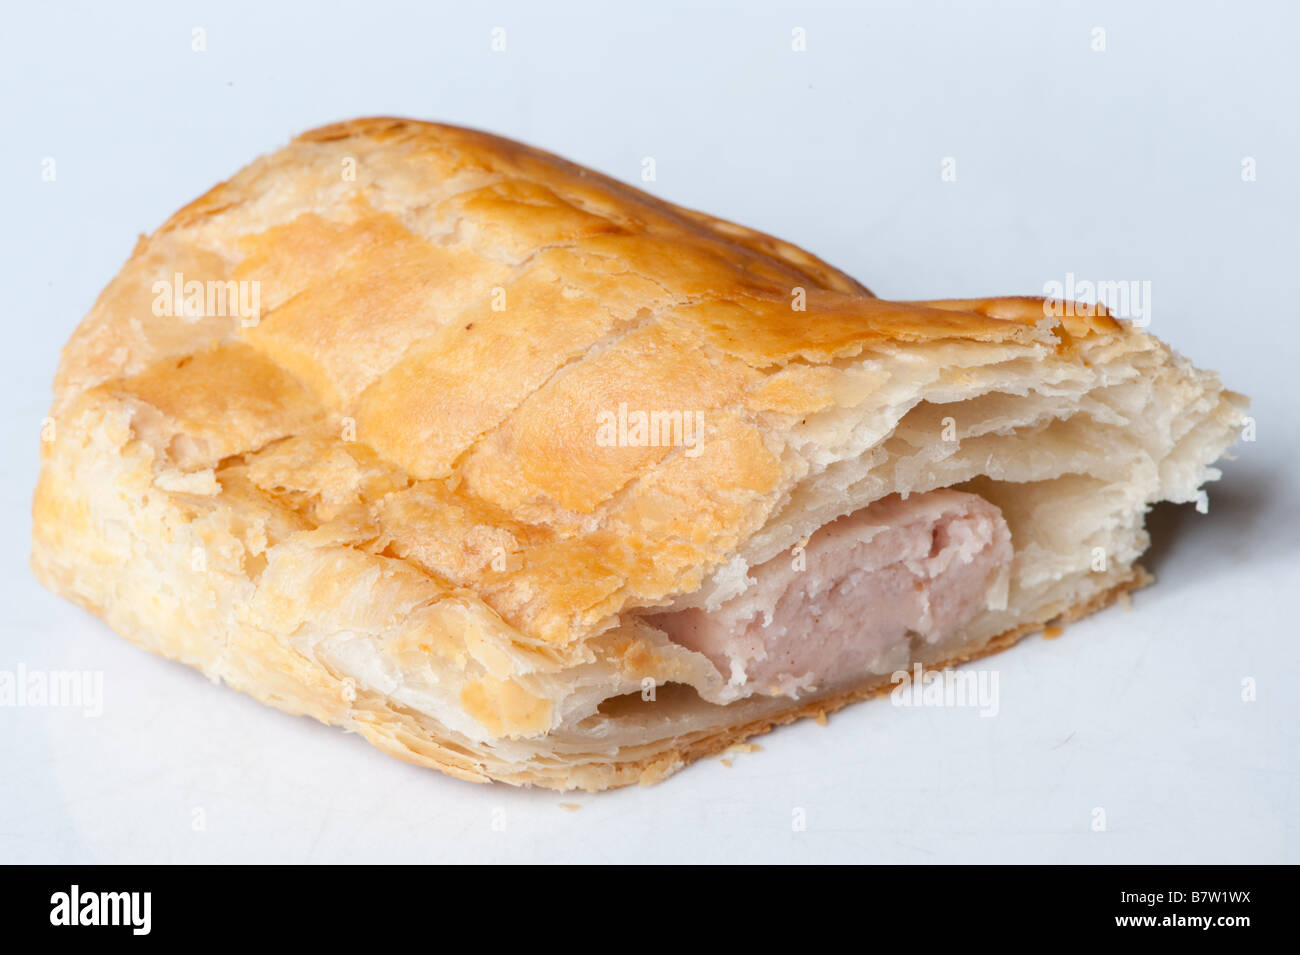 a sausage roll cut in half on a white background - Stock Image